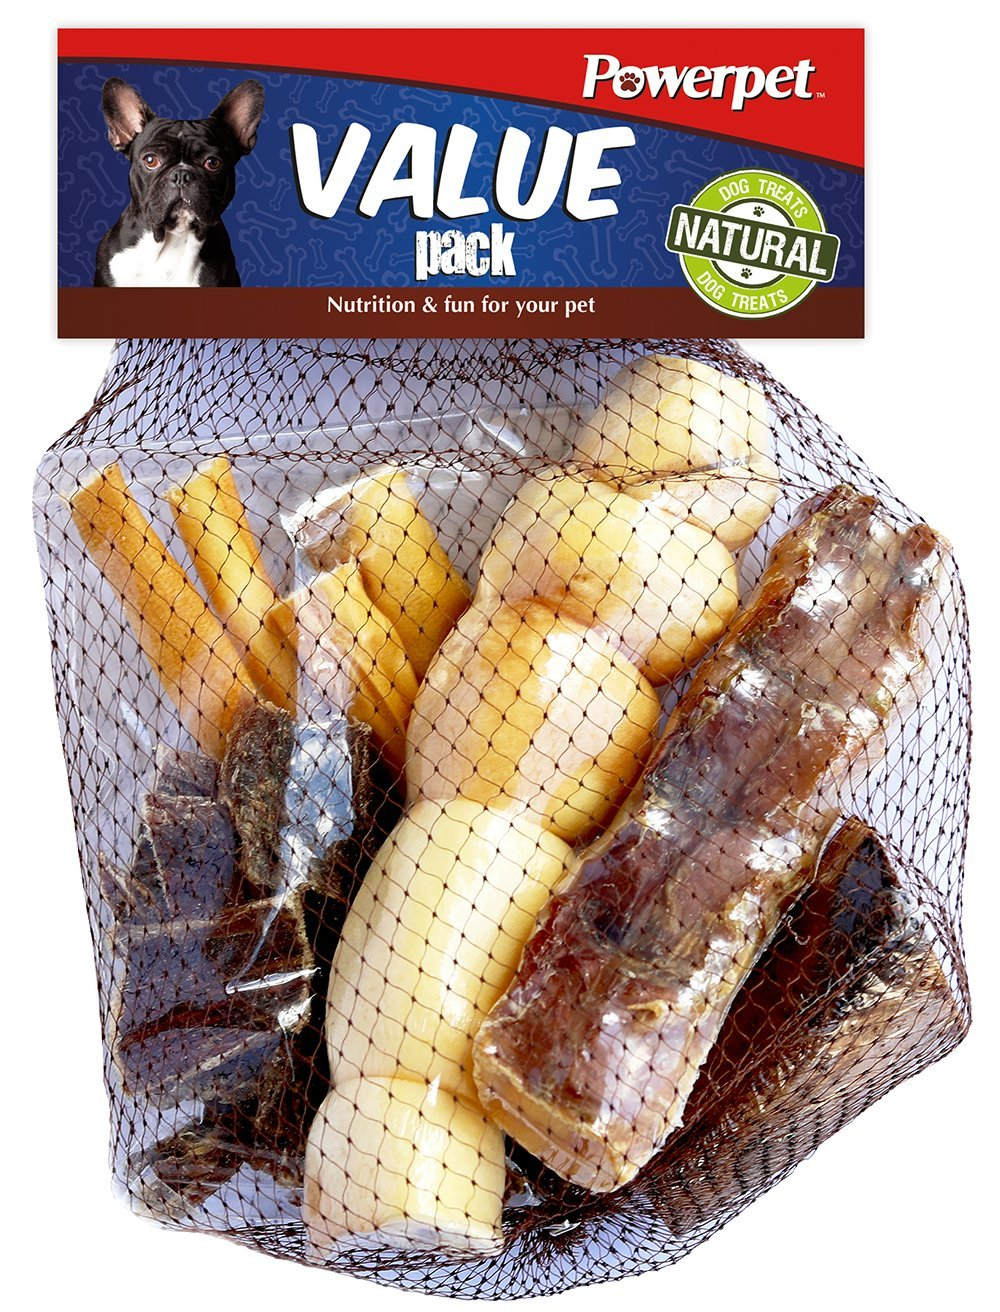 Powerpet: Value Pack - Natural Dog Chews - Helps Improve Dental Hygiene - 100% Natural & Highly Digestible - Protein with Low Fat - Smoked Beef Bone - Beef Jerky Bites, Trachea, Cheek Roll, Cow Tail by Powerpet (Image #1)